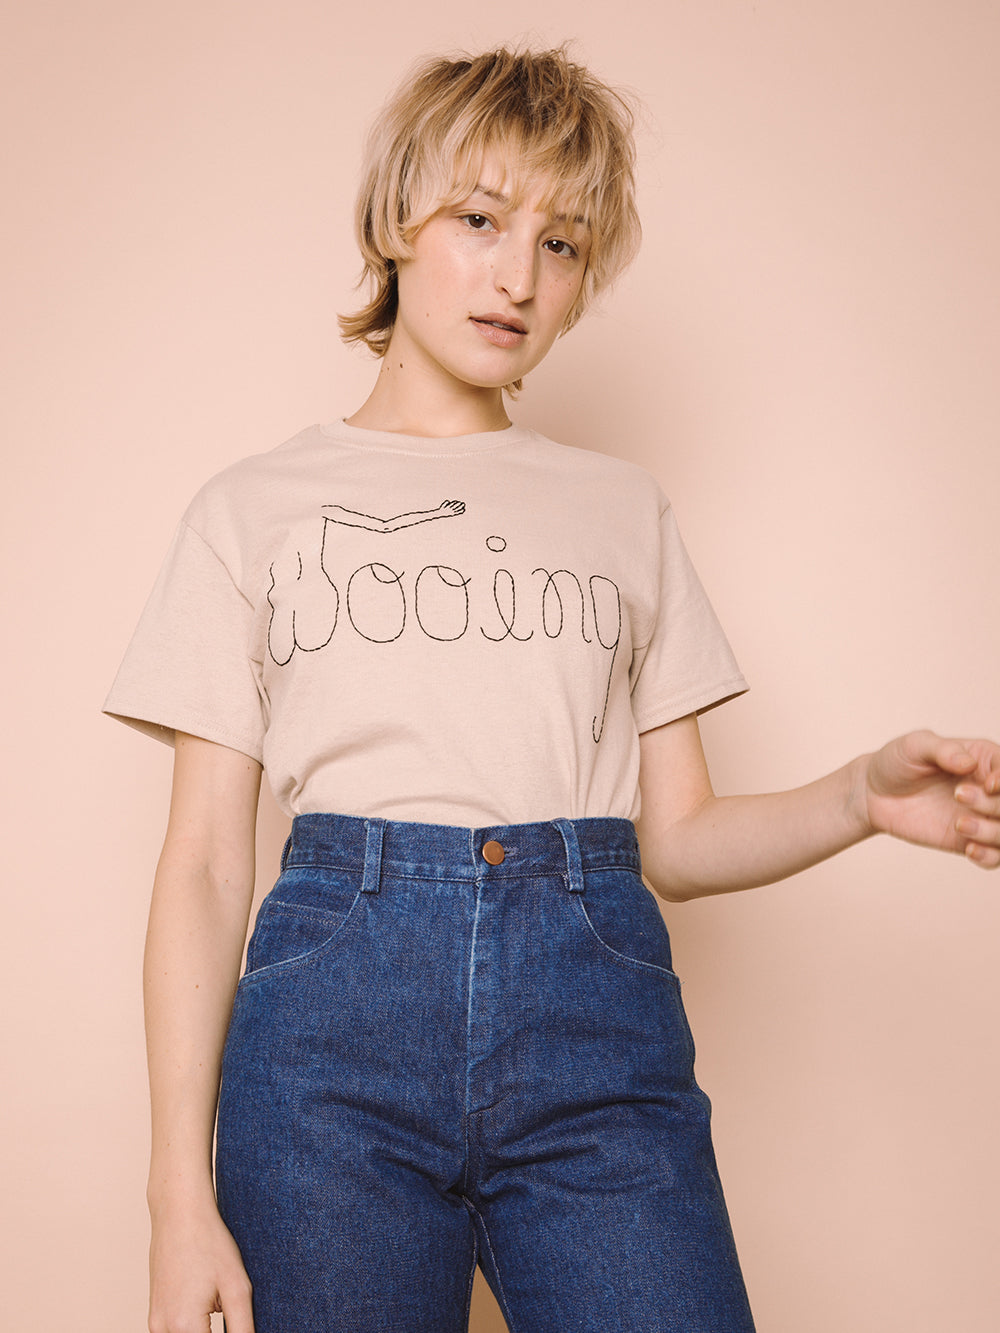 Wooing T-Shirt | Hand Embroidered